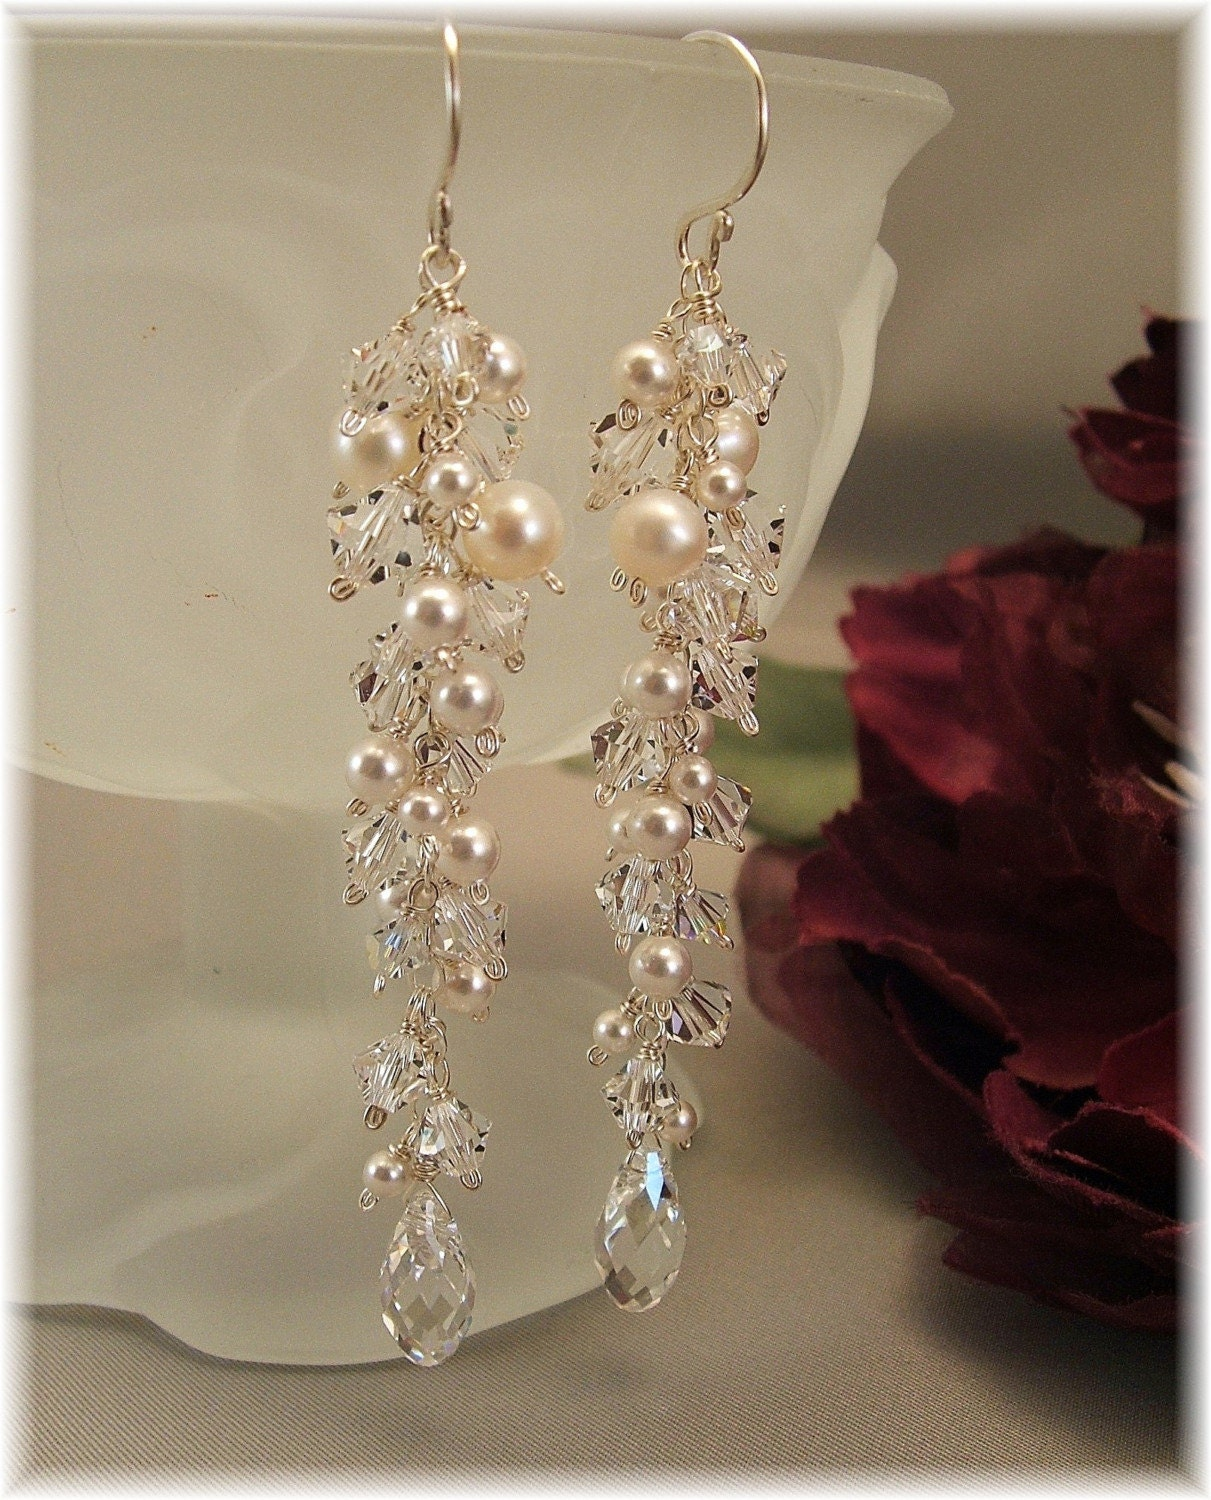 WEDDING DAY EARRINGS   ICICLE  PEARL  EARRINGS   by Handwired from etsy.com